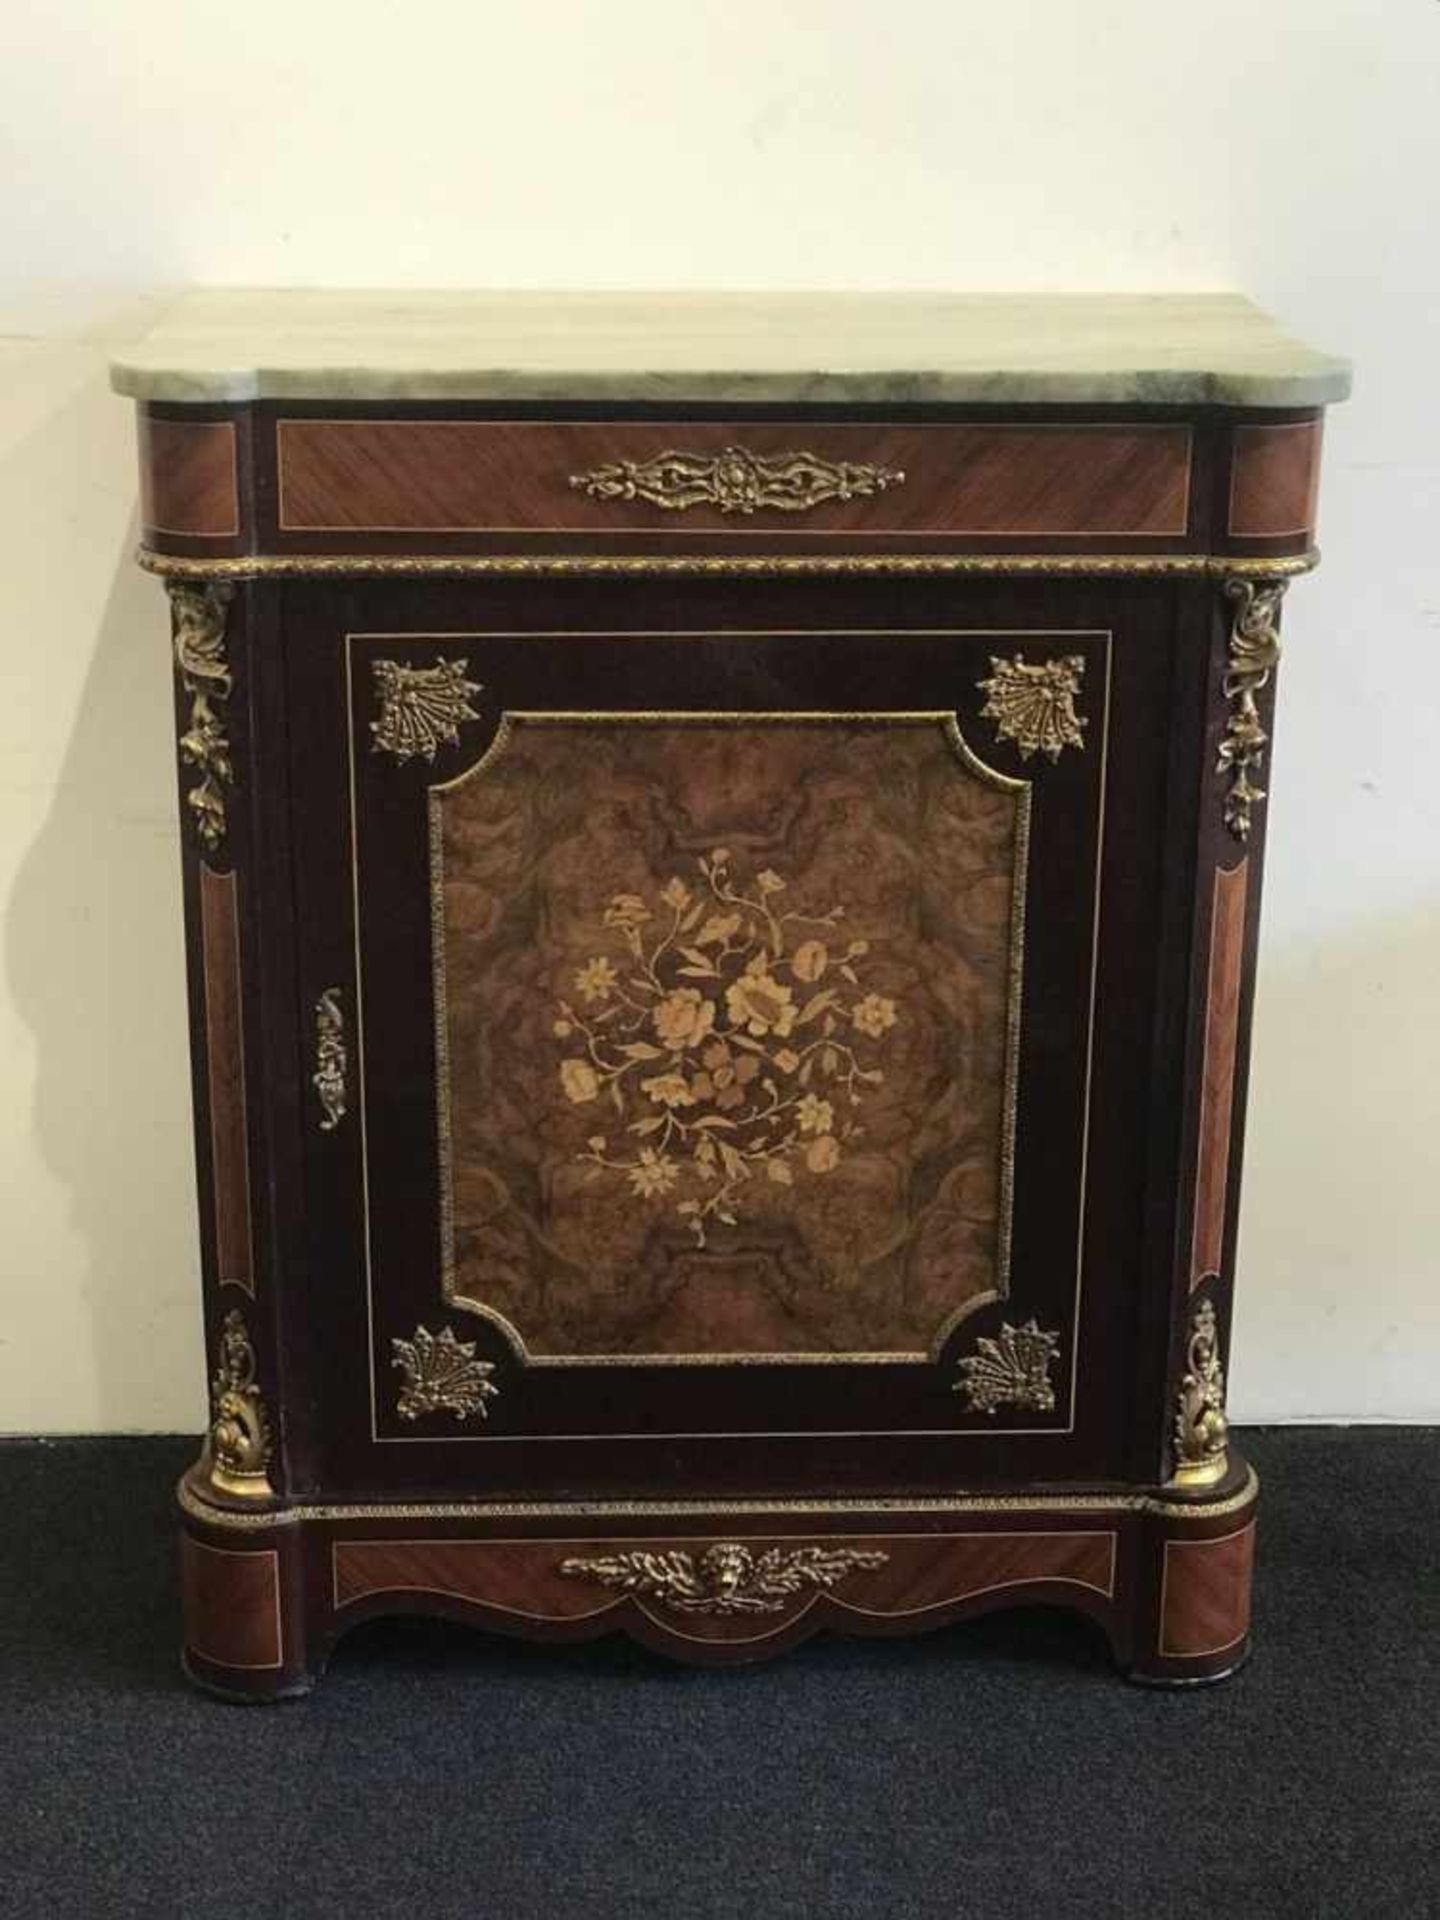 Cupboard style Napoleon III marquetry, root wood and marble top H 100 B 82 D 40 cm